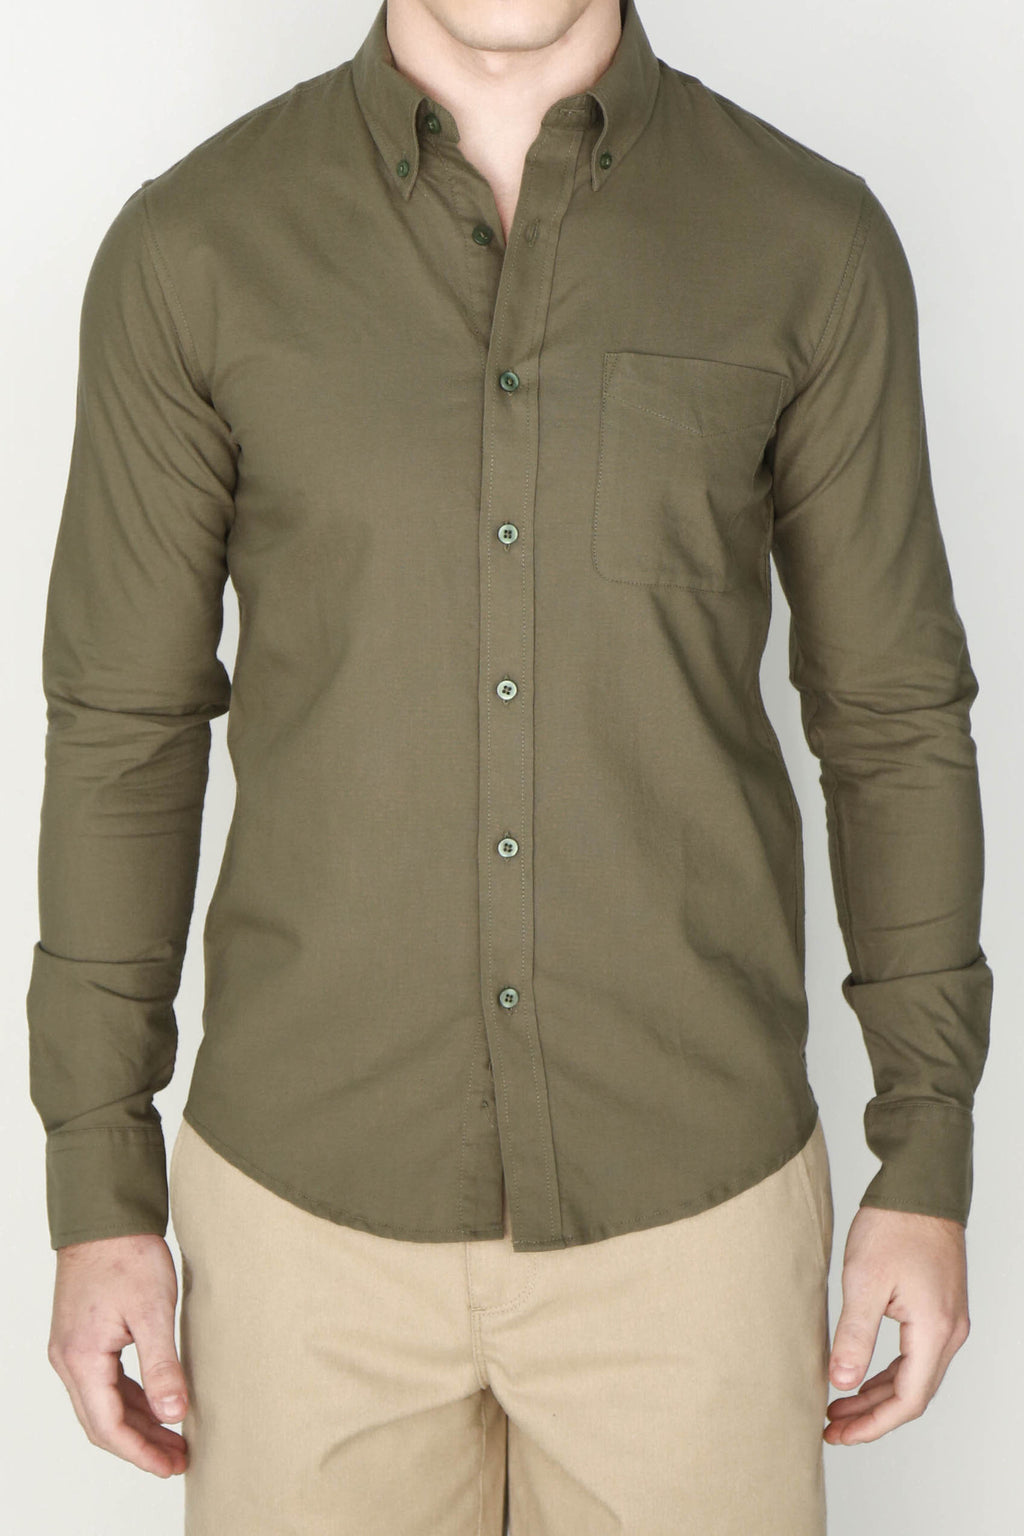 M's Lightweight Oxford Shirt (Olive)